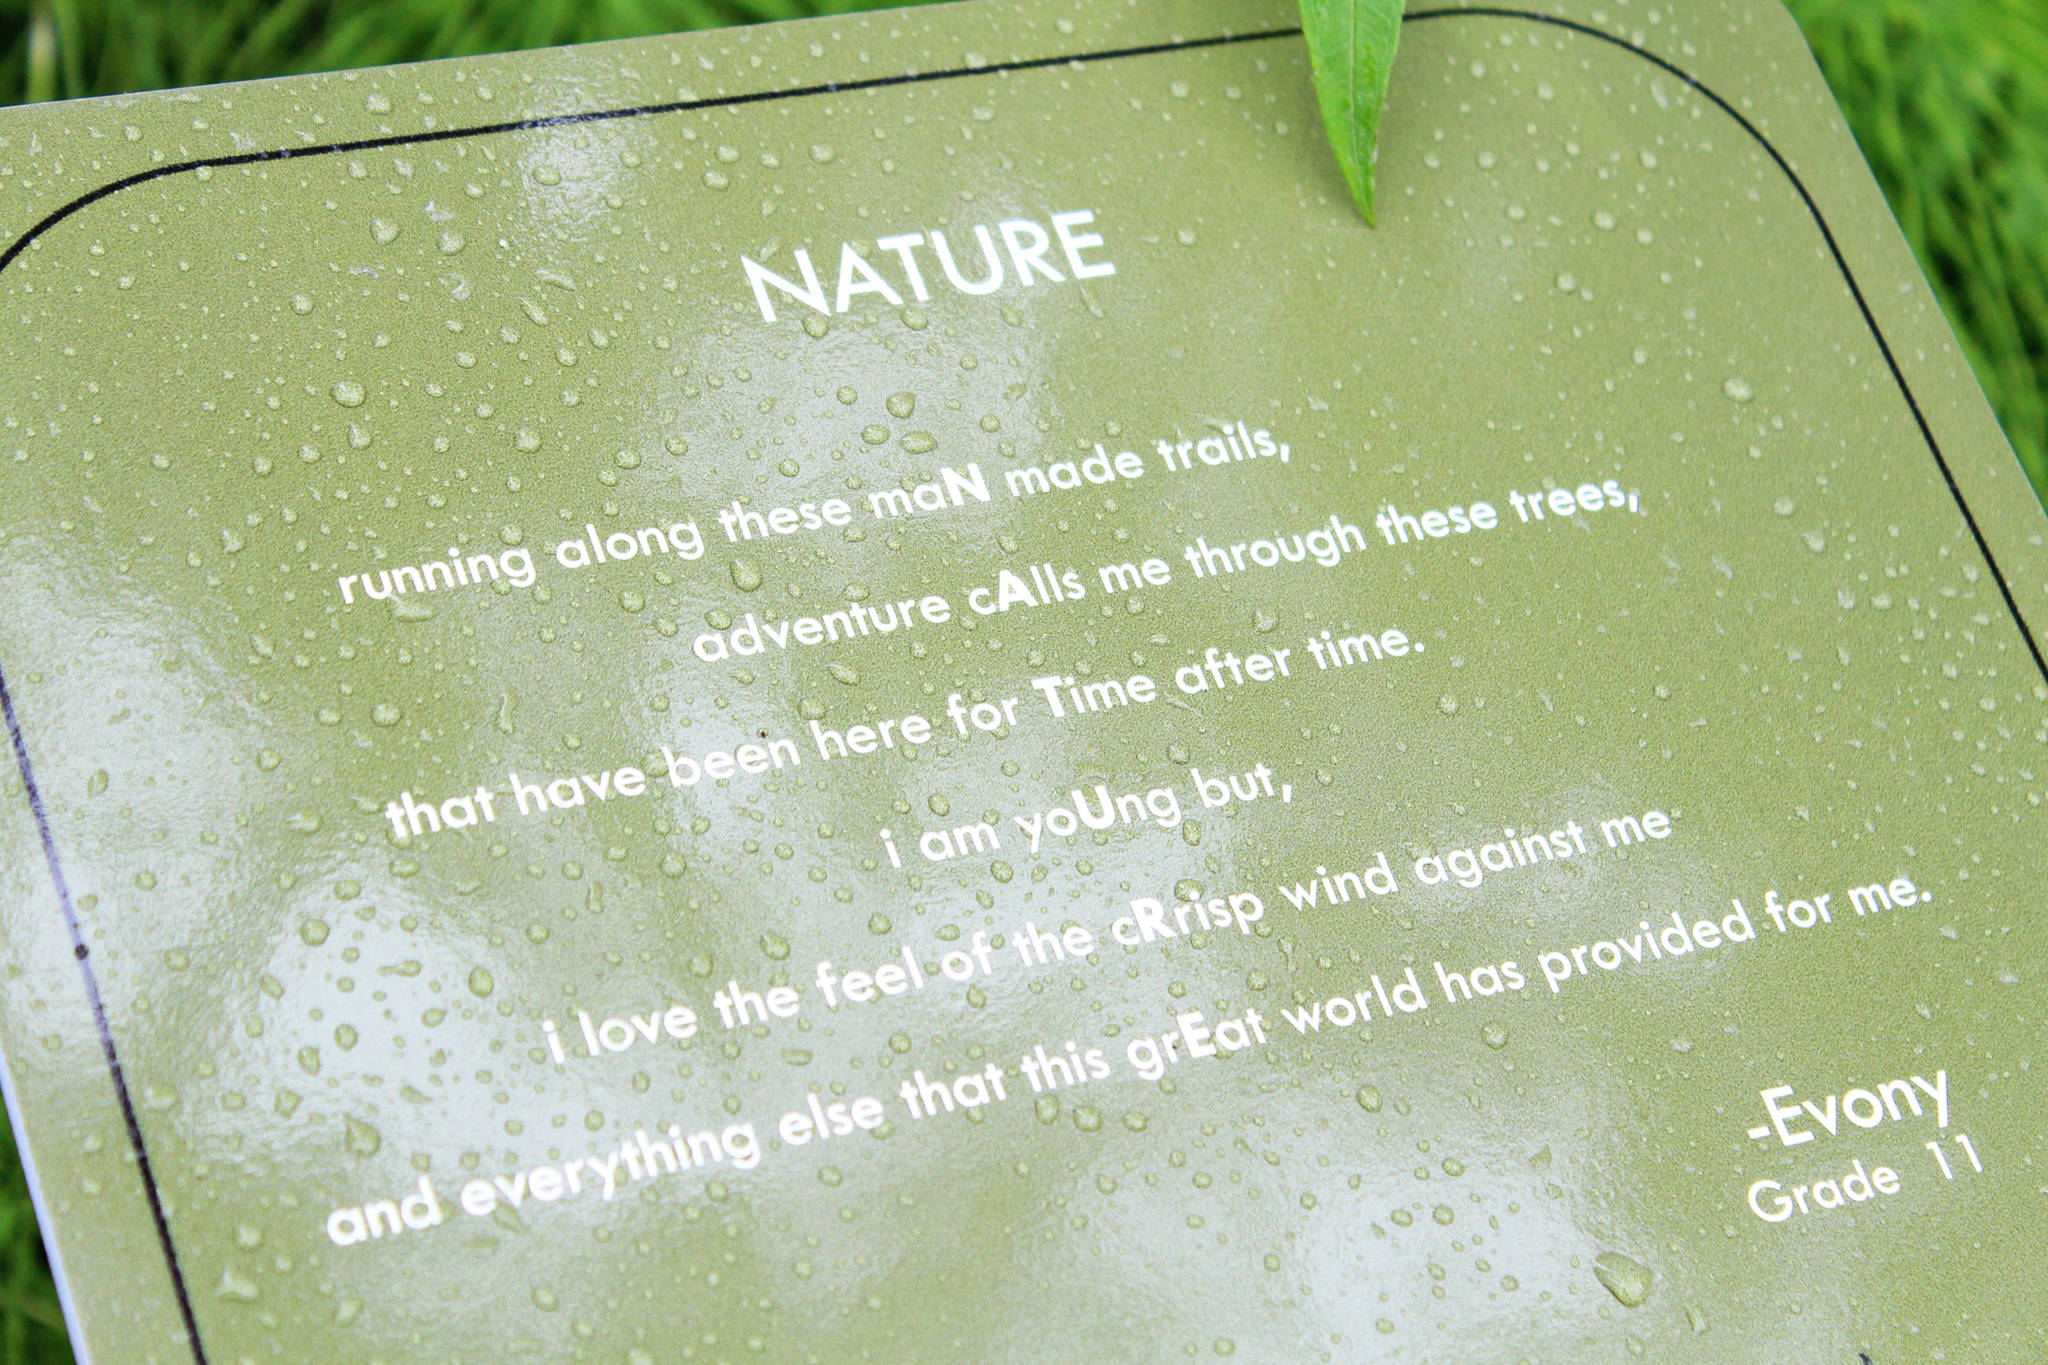 """The poem """"Nature"""" is displayed on a sign Saturday, July 1, 2017 on the trail at Kenai Municipal Park in Kenai, Alaska. The sign is one of 12 along the trail displaying the winning poems about nature chosen from 86 entries in the Pathways of Poetry project, spearheaded by the Kenai Parks and Recreation Department and Kenai Community Library. (Photo by Megan Pacer/Peninsula Clarion)"""